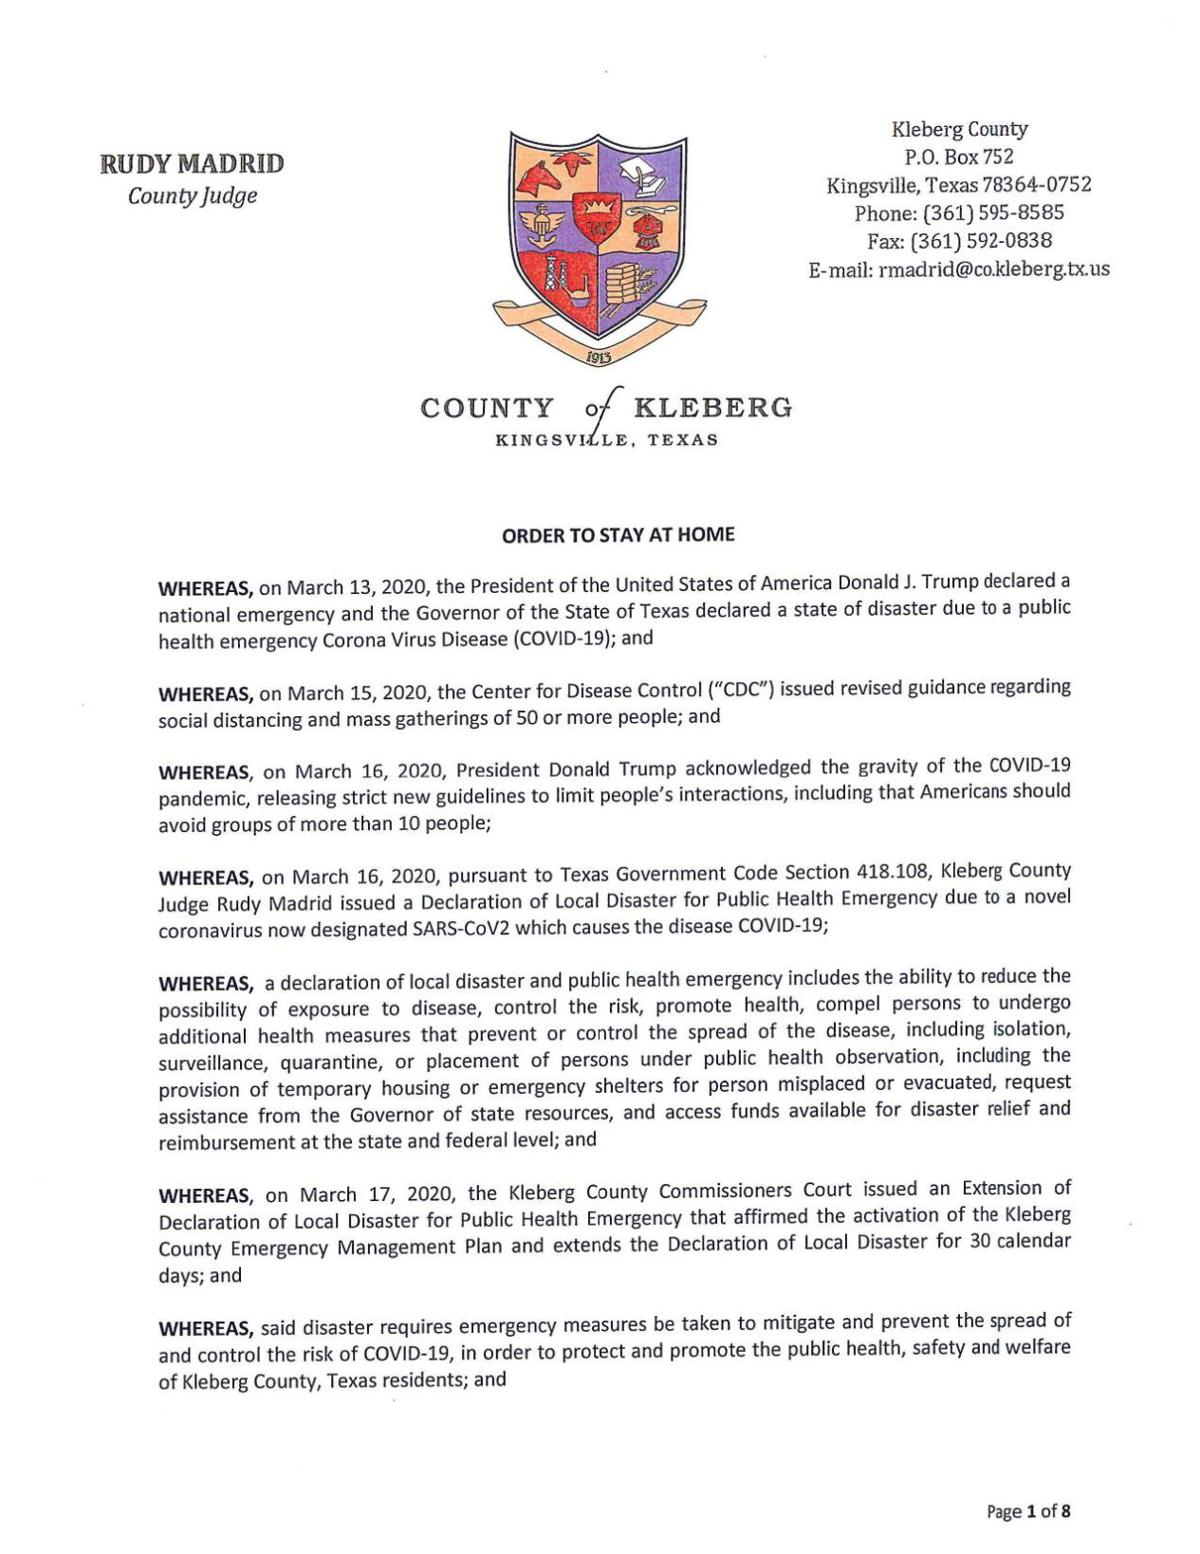 Kleberg County Order to Stay at Home